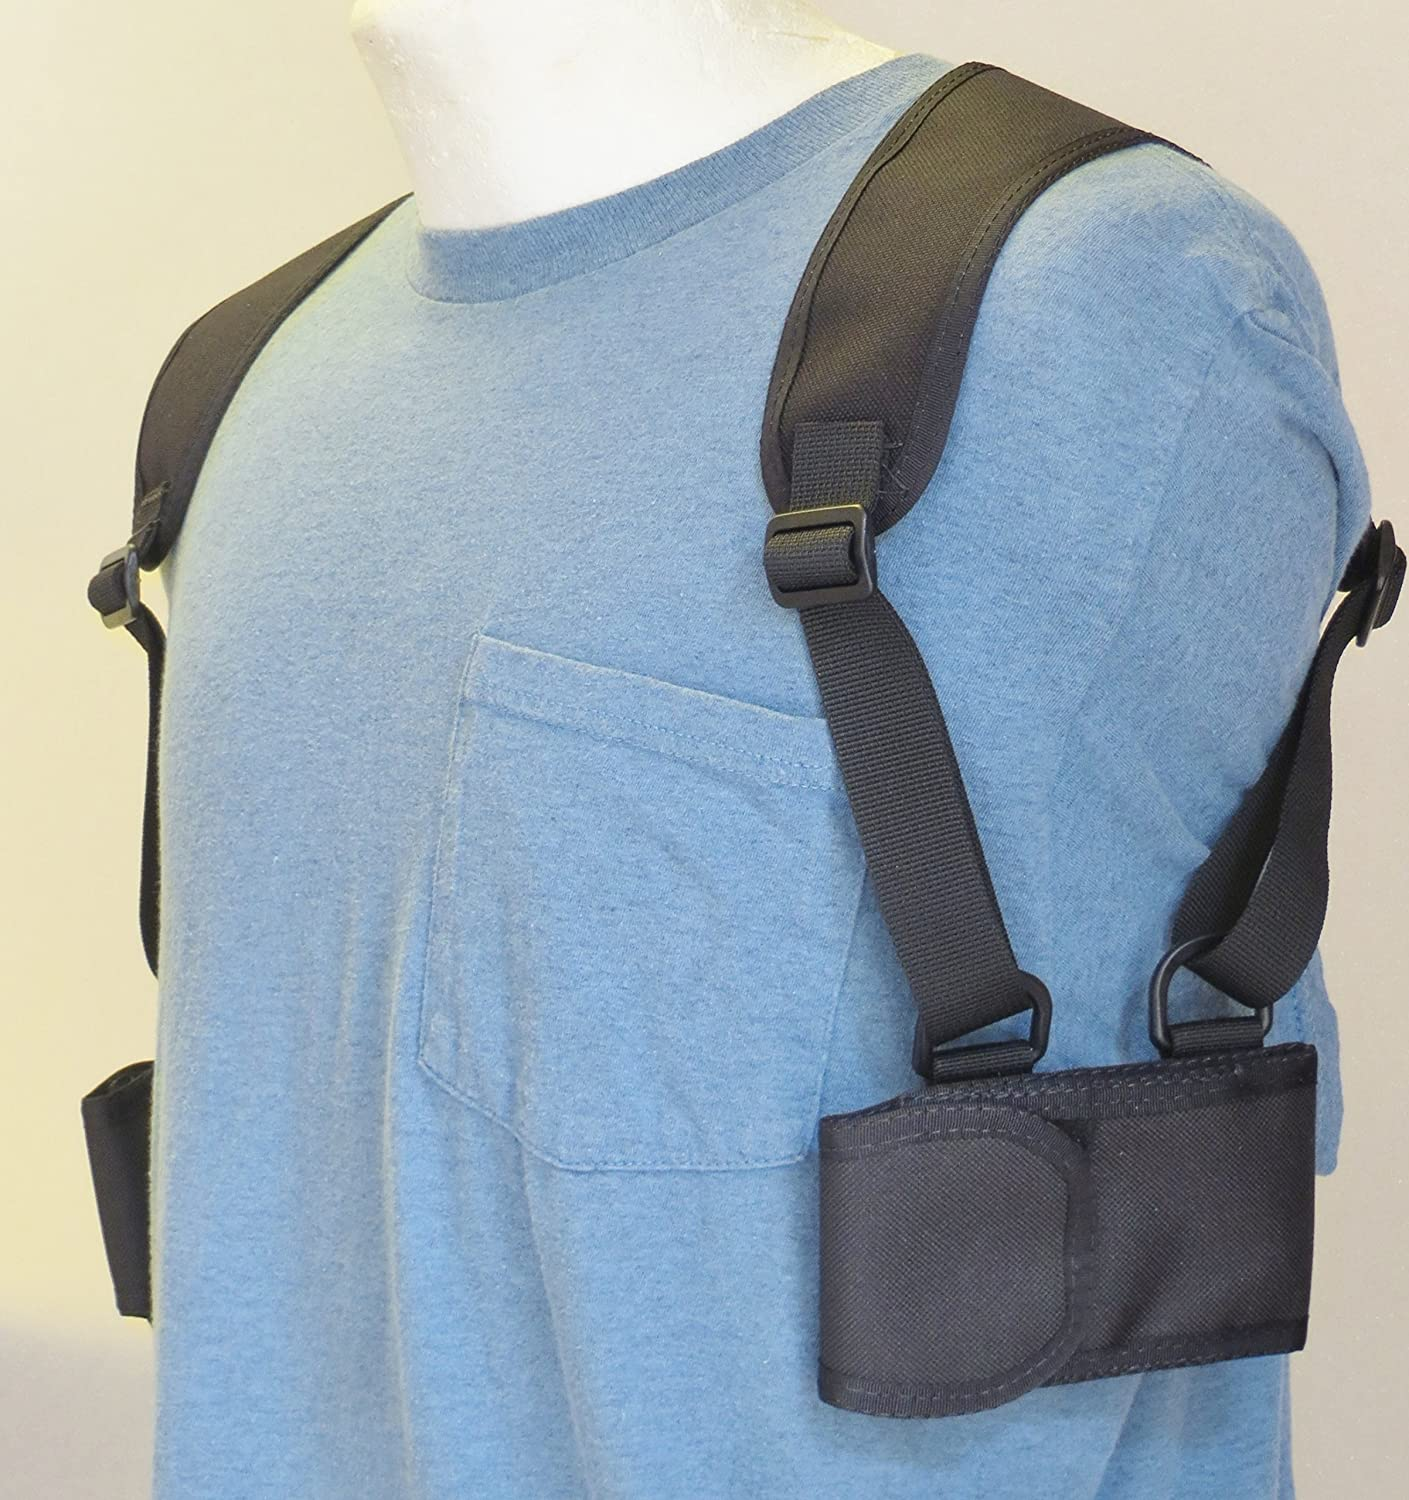 shoulder holster for cell phone